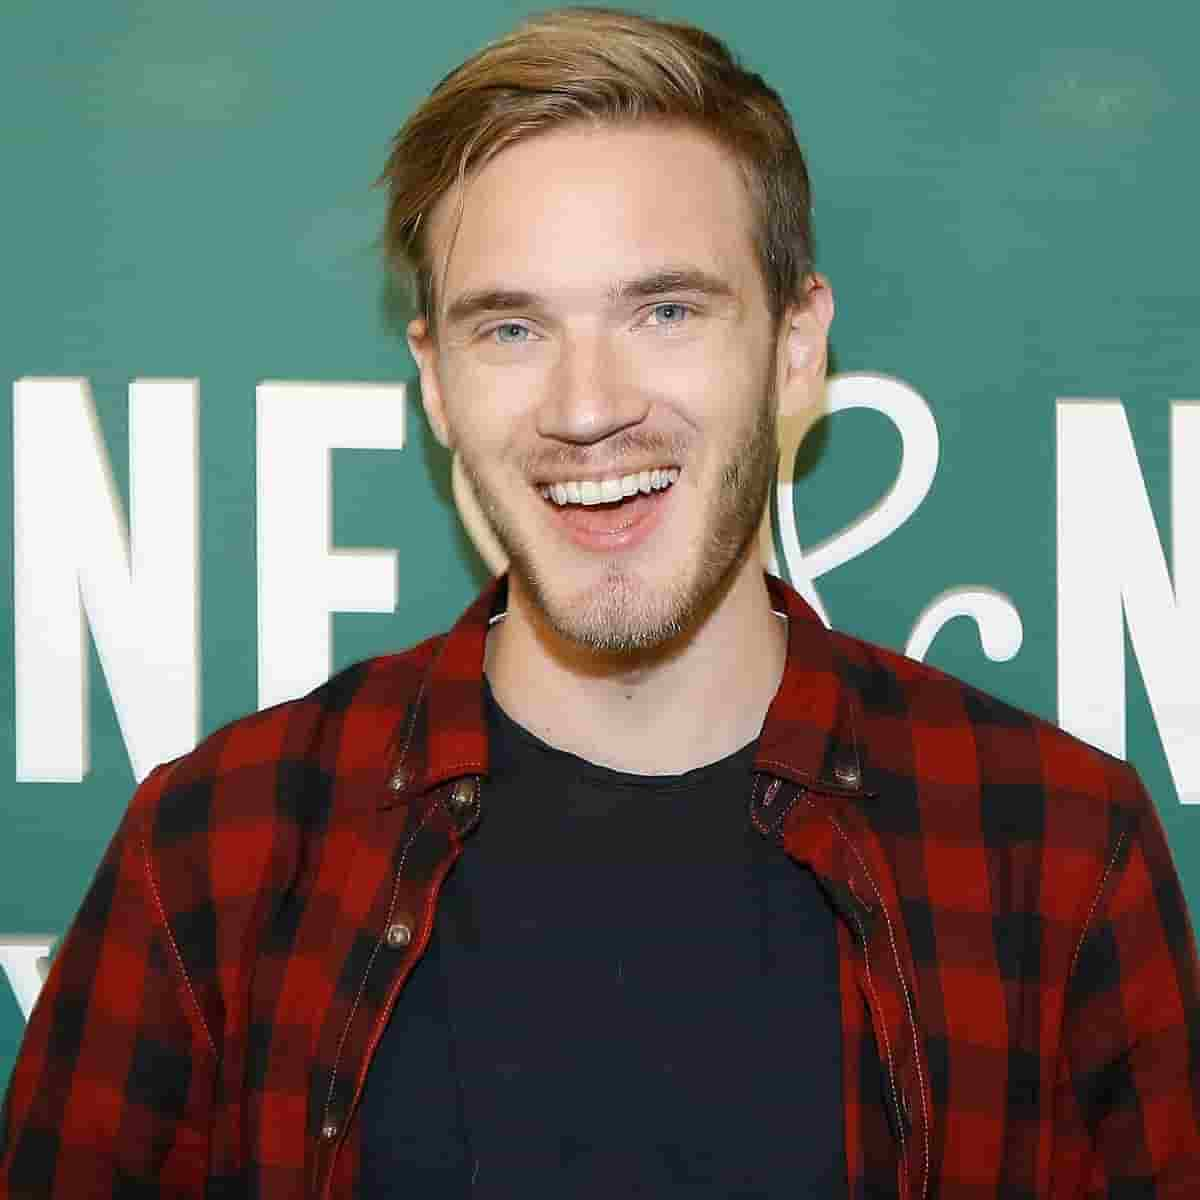 The world's most popular YouTuber PewDiePie